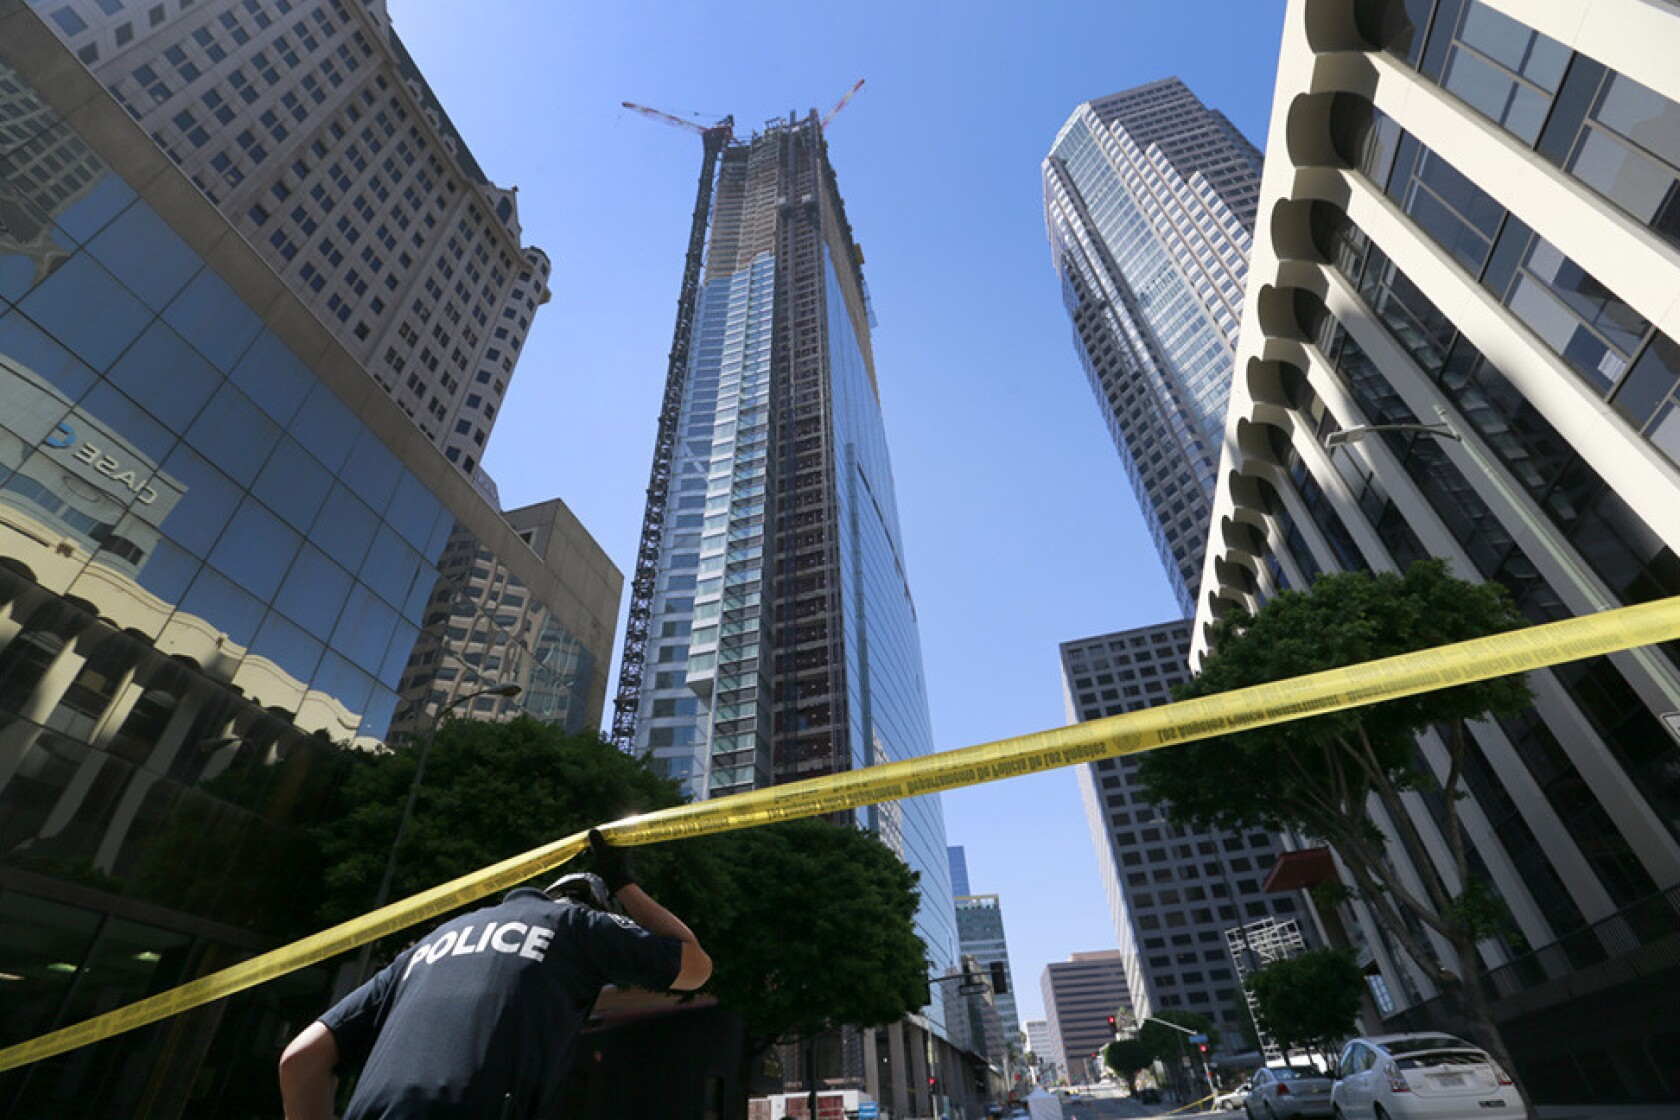 Construction worker falls from L A  high-rise, hits cars and